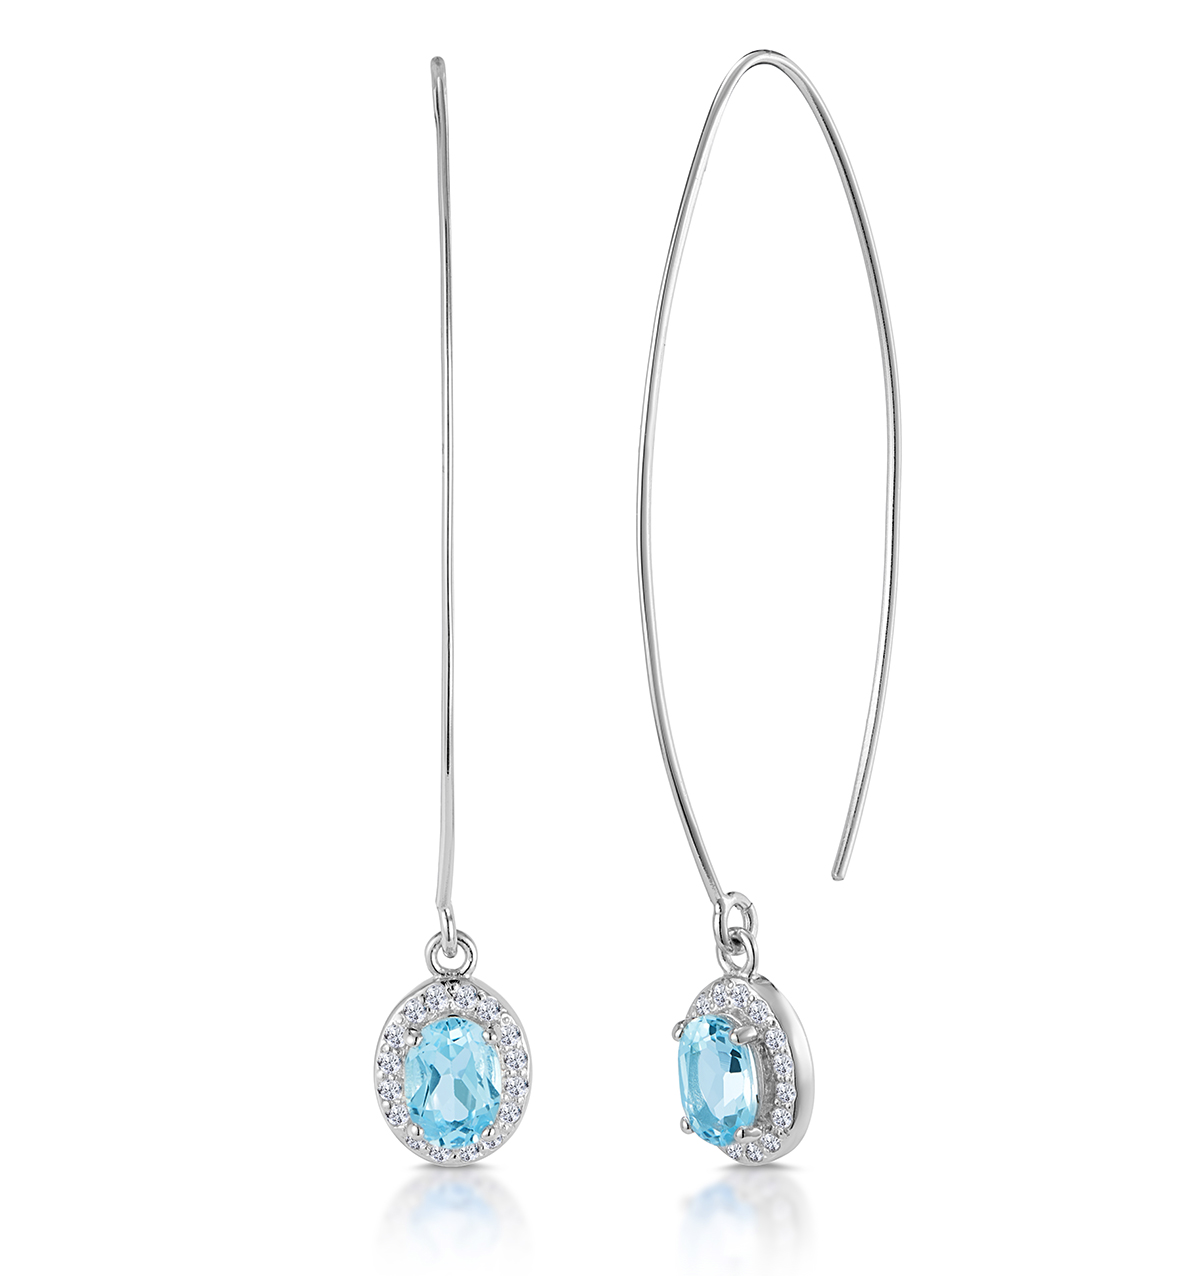 BLUE AND WHITE TOPAZ SILVER THREADER EARRINGS - TESORO COLLECTION